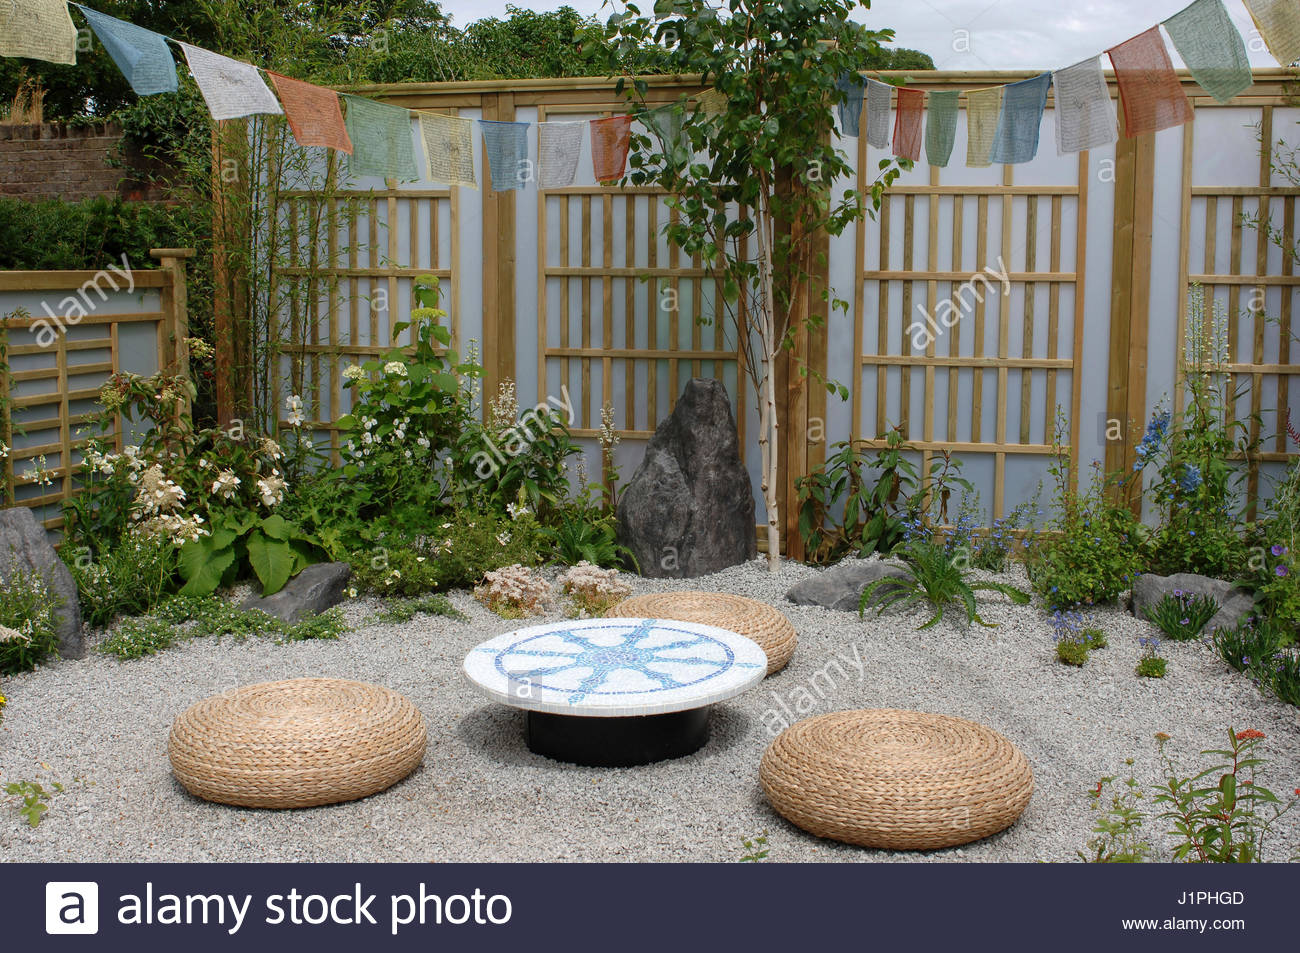 Plexiglass stock photos plexiglass stock images alamy for Japanese garden trellis designs